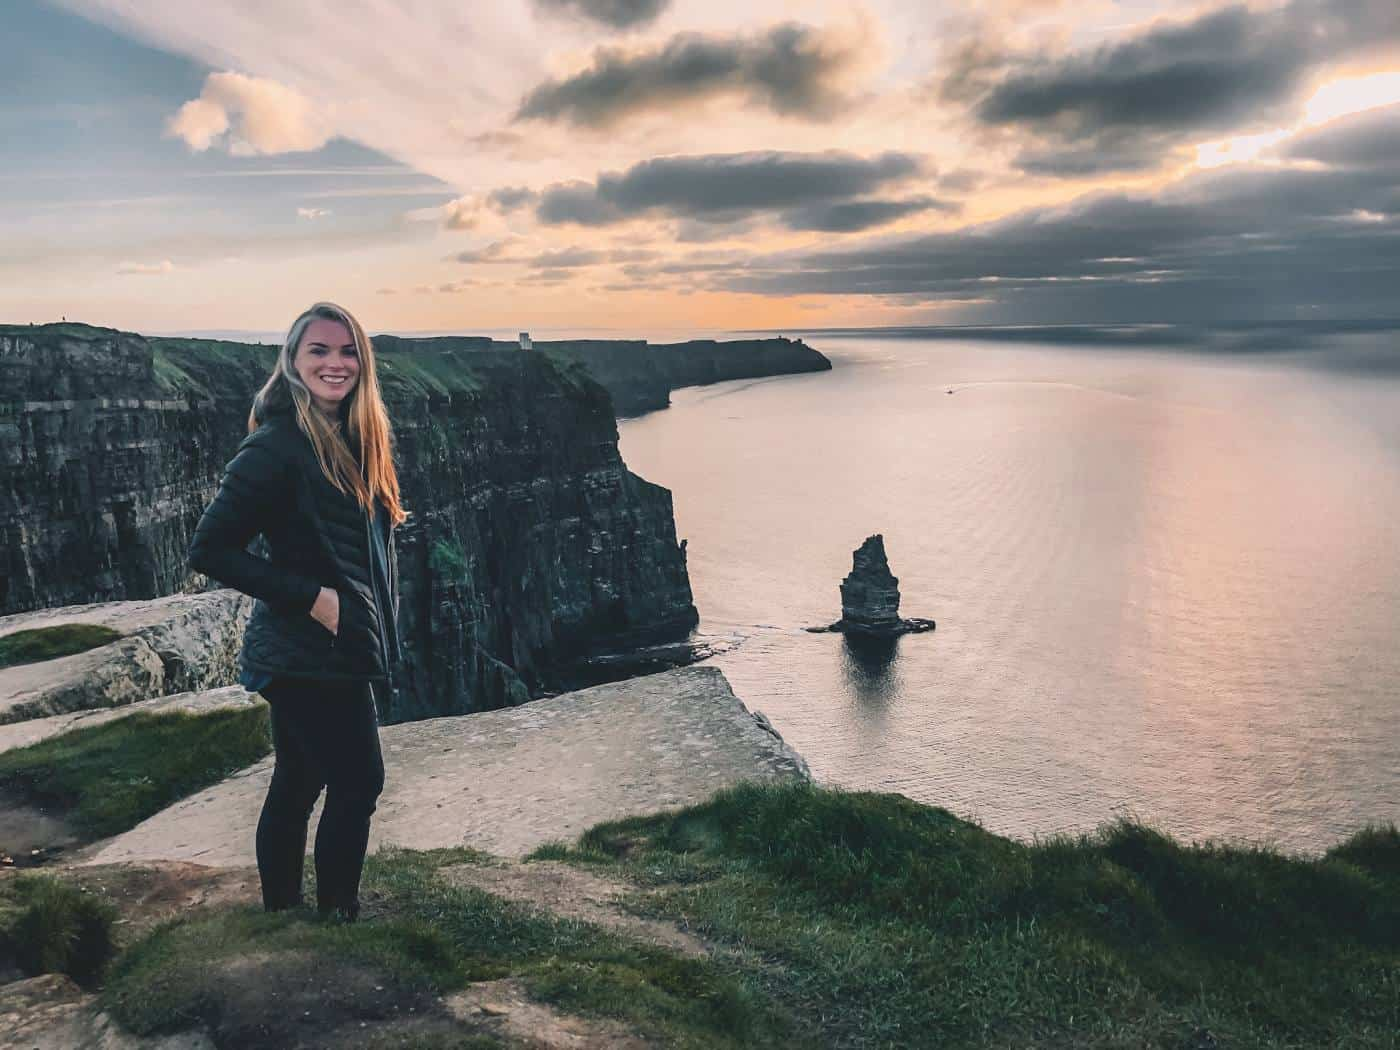 me standing in front of the Cliffs of Moher at sunset